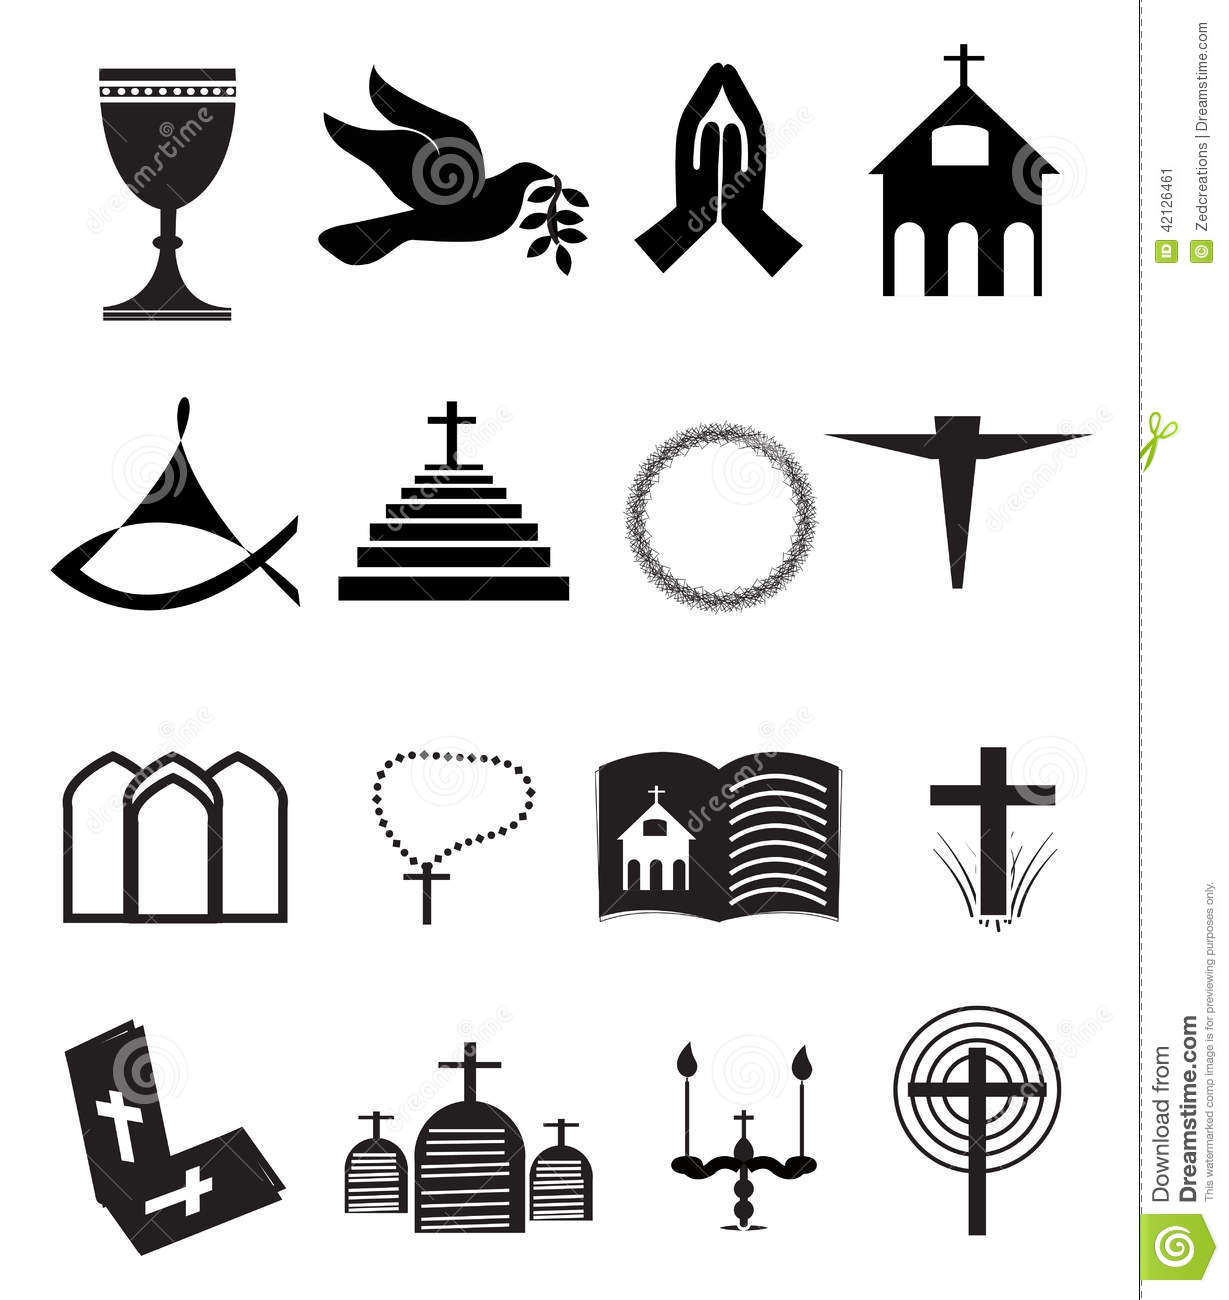 More similar stock images of ` Church and Other Christian Symbol Icons ... Catholic Chalice